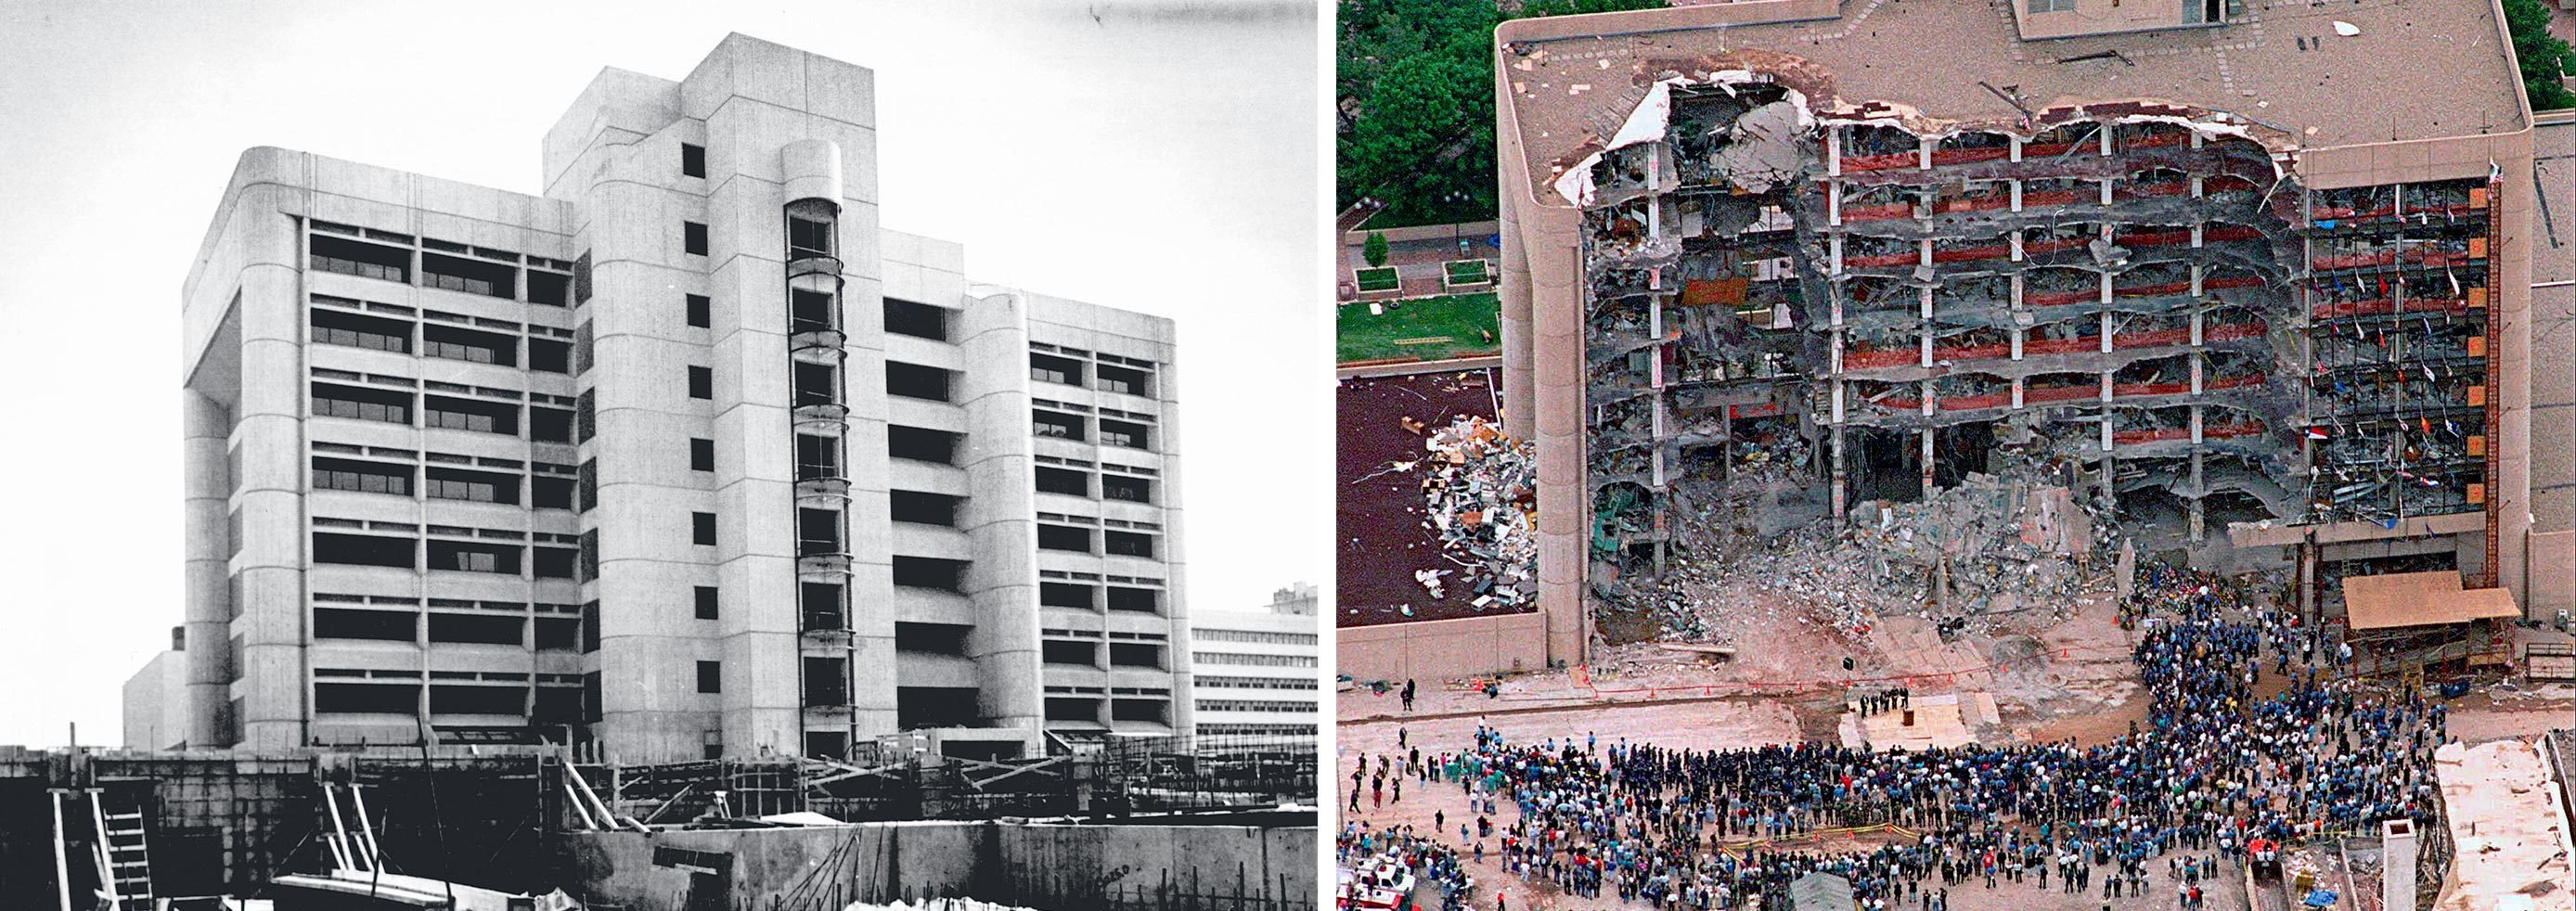 the building facade before and after the bombing